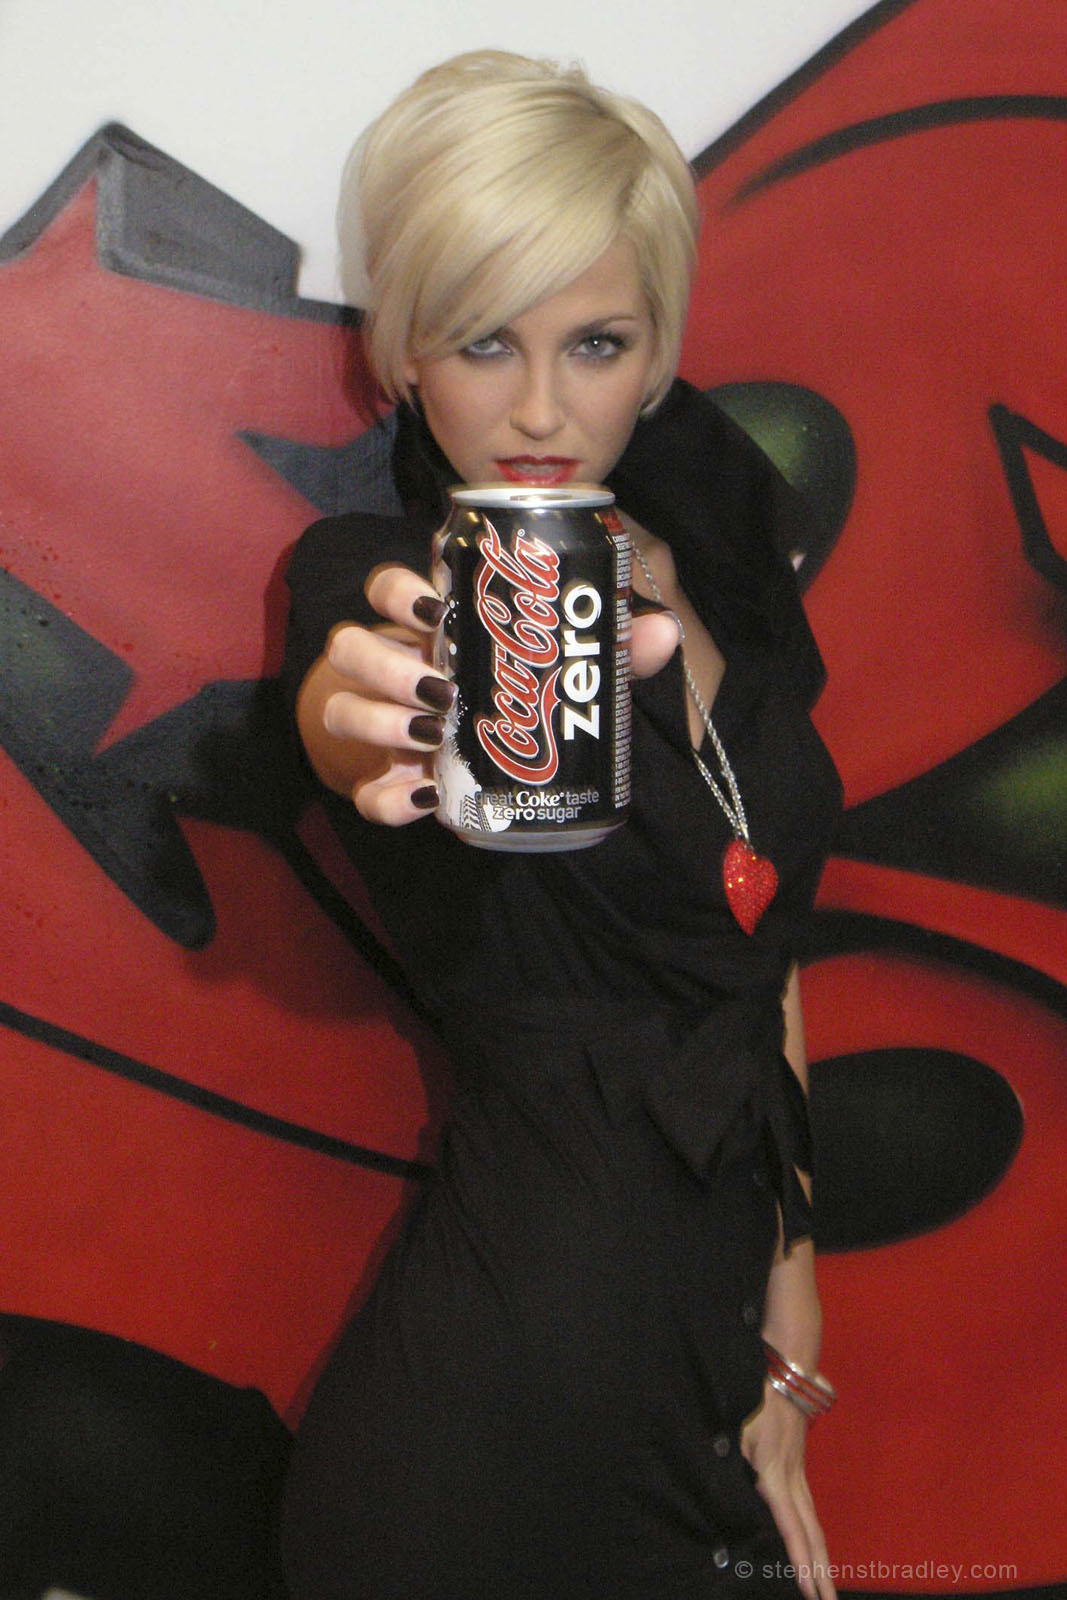 PR Photographer Dublin Ireland photo 1014105 - Sarah Harding Girls Aloud promoting Coca Cola Zero for Edelman PR